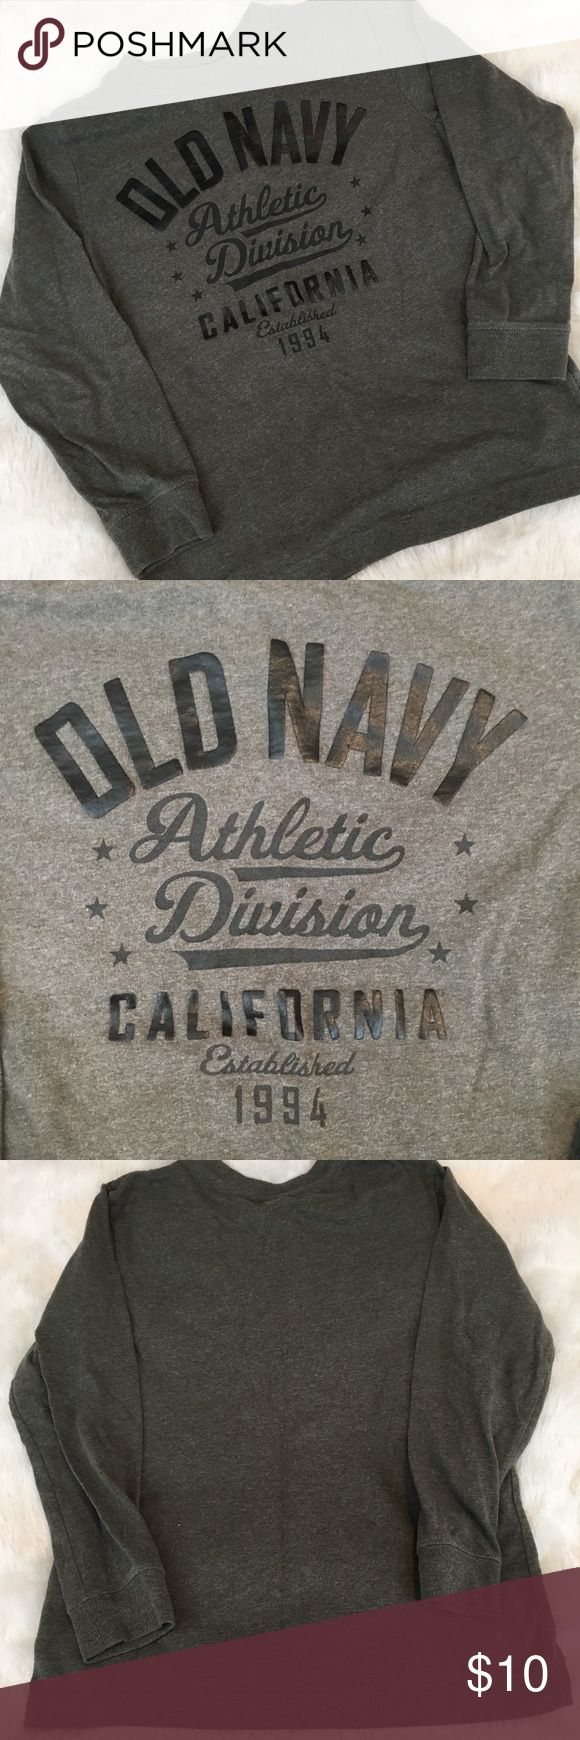 """Boy's Old Navy L/S T-Shirt Boy's Old Navy Charcoal Grey """"Athletic Division"""" long sleeve t-Shirt. Size S(6/7). In great preloved condition. ❌NO TRADES ❌NO LOWBALLING ❌NO MODELING ❌ Old Navy Shirts & Tops Tees - Long Sleeve"""